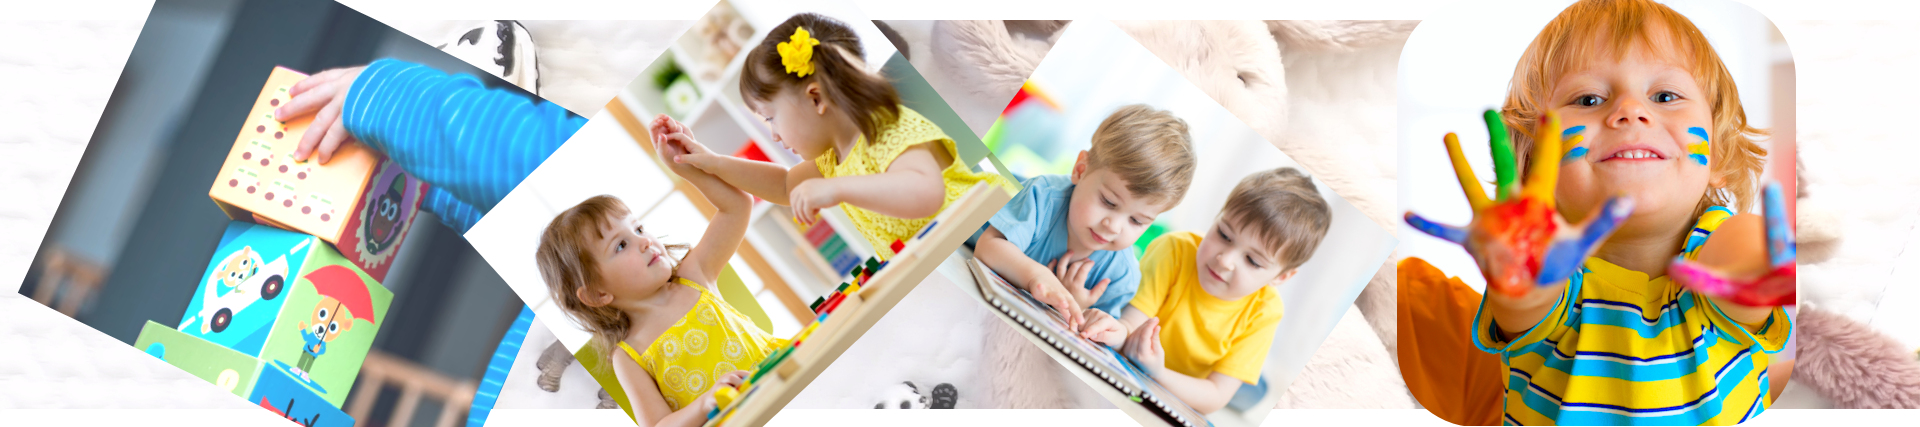 Website design choices for daycare and nursery online presence.